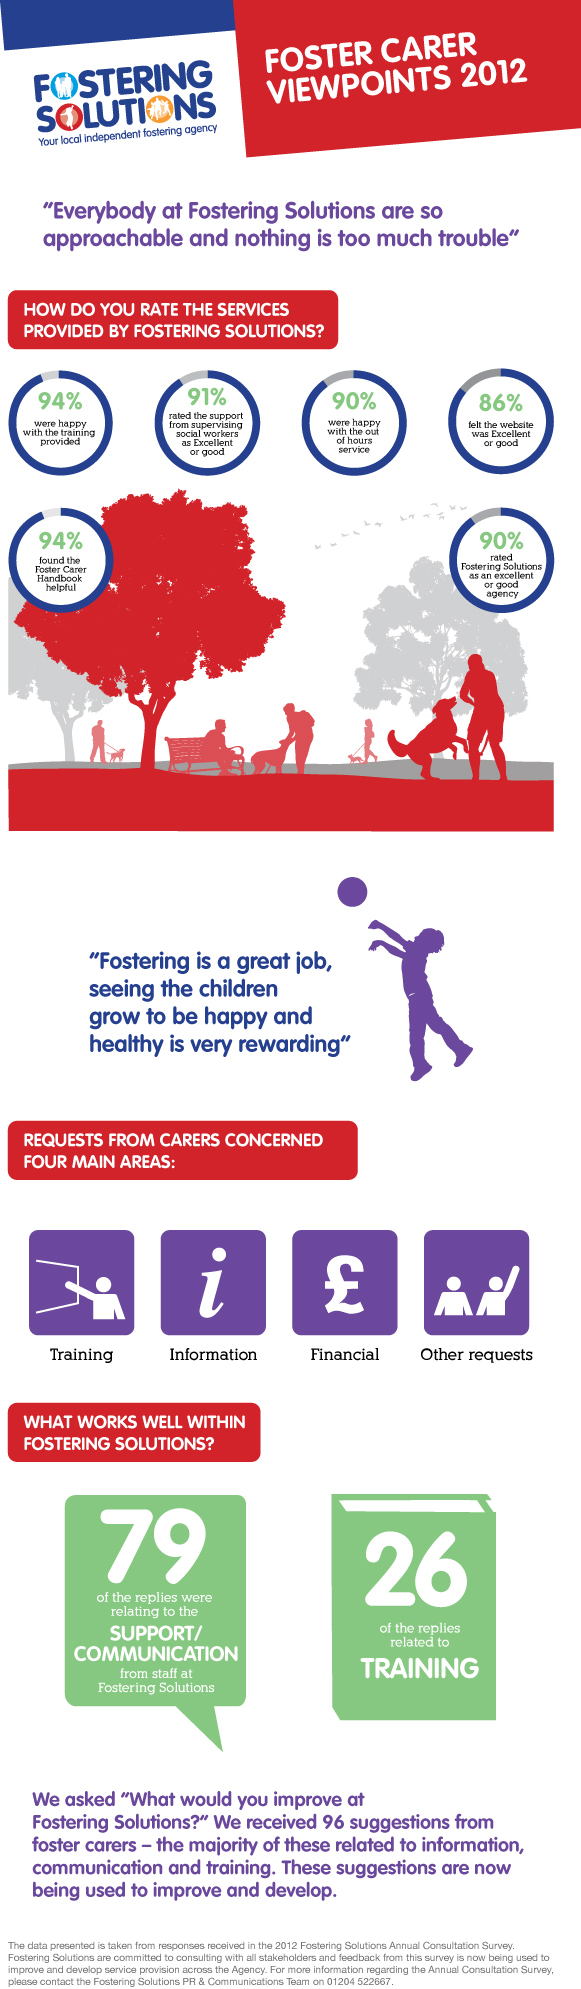 Foster_Carer_Viewpoints_2012_v7